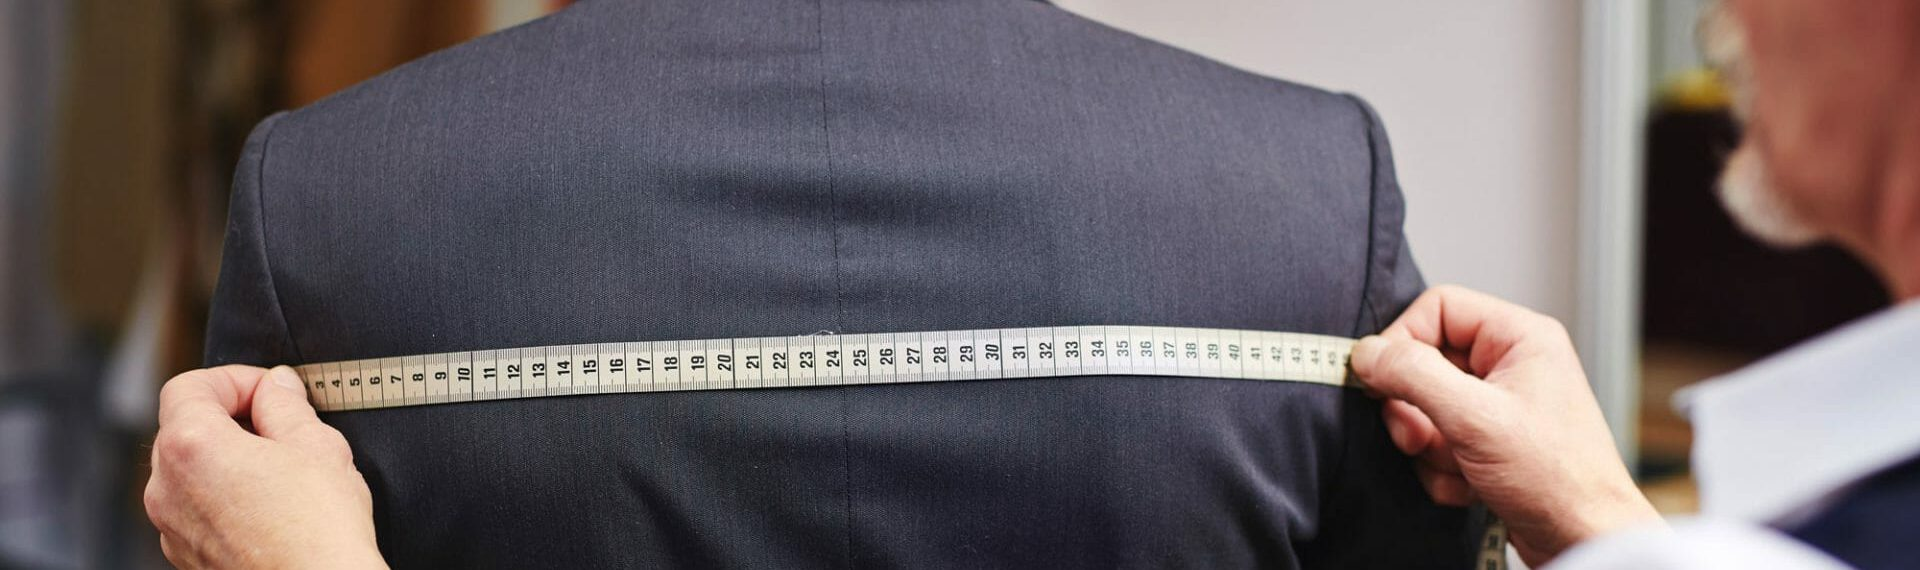 tailor using tape during suit fitting